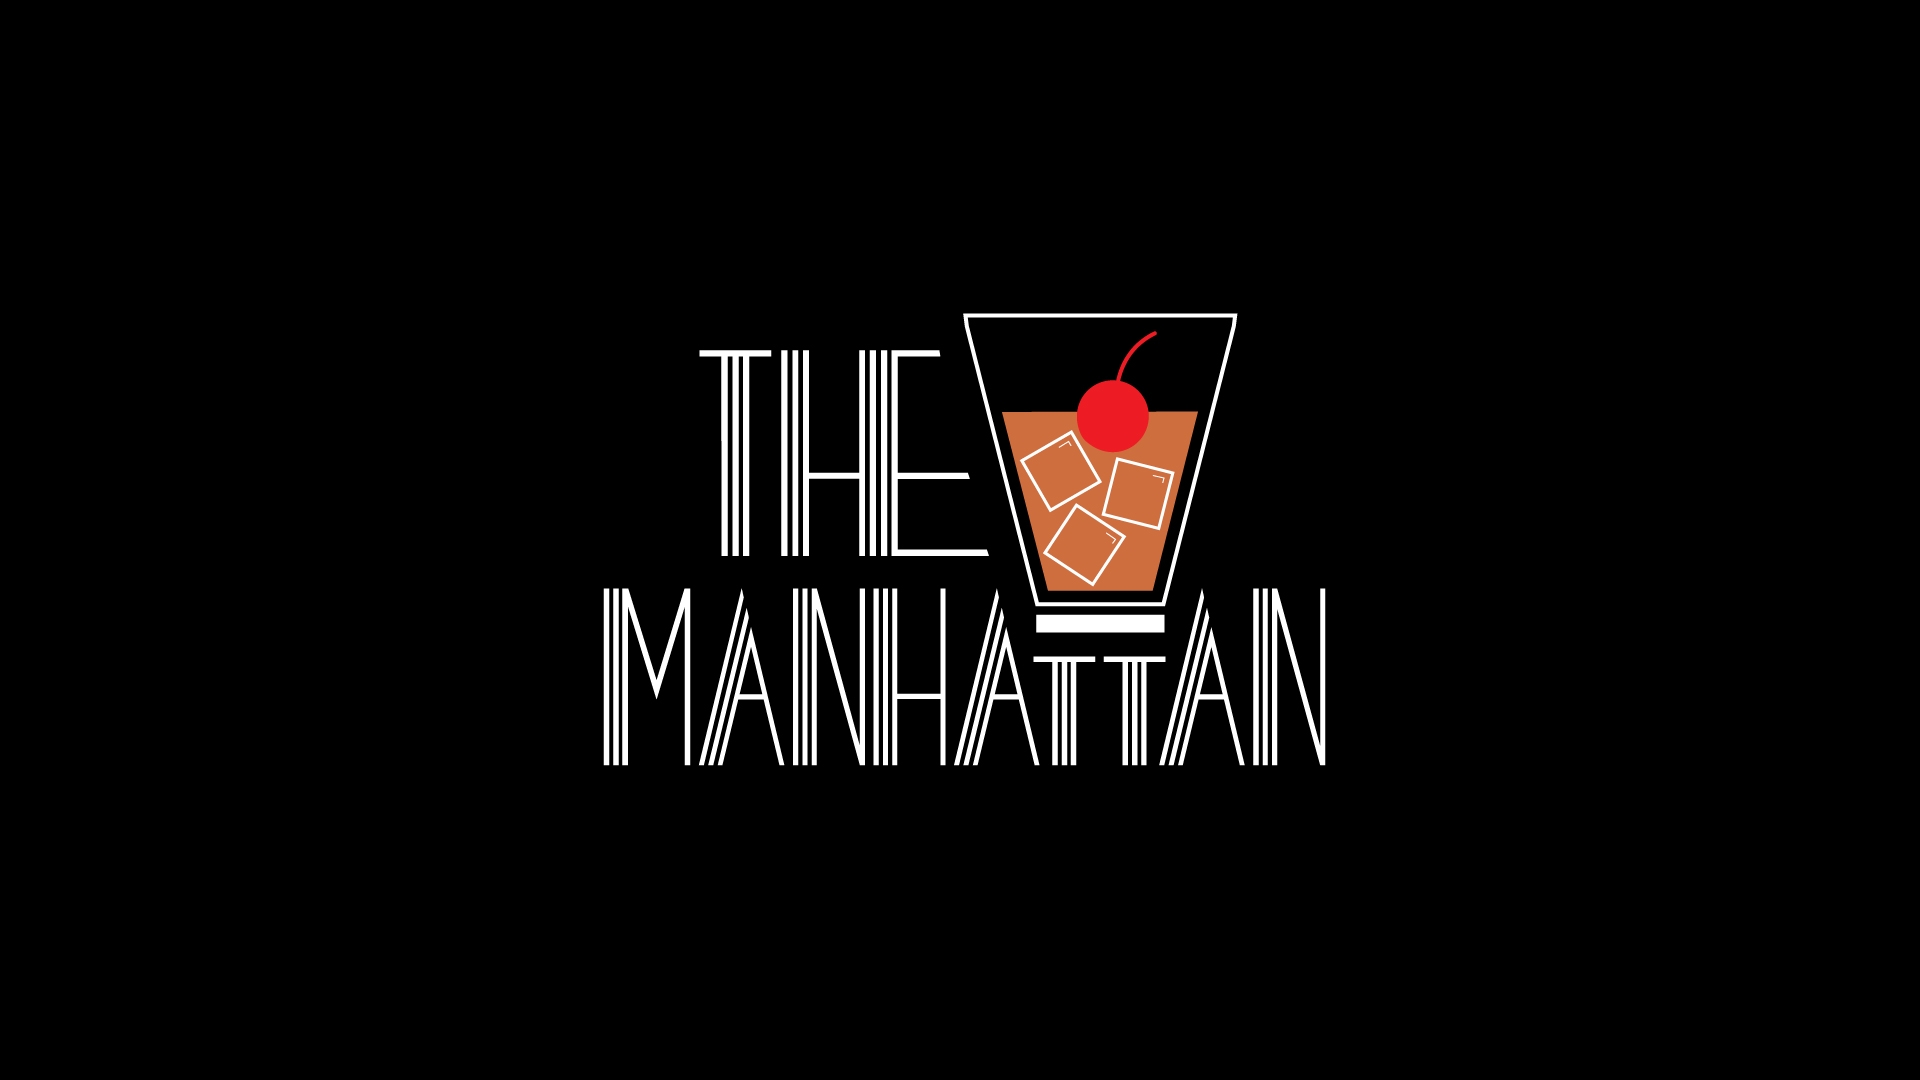 The Manhattan_Compo-02.jpg